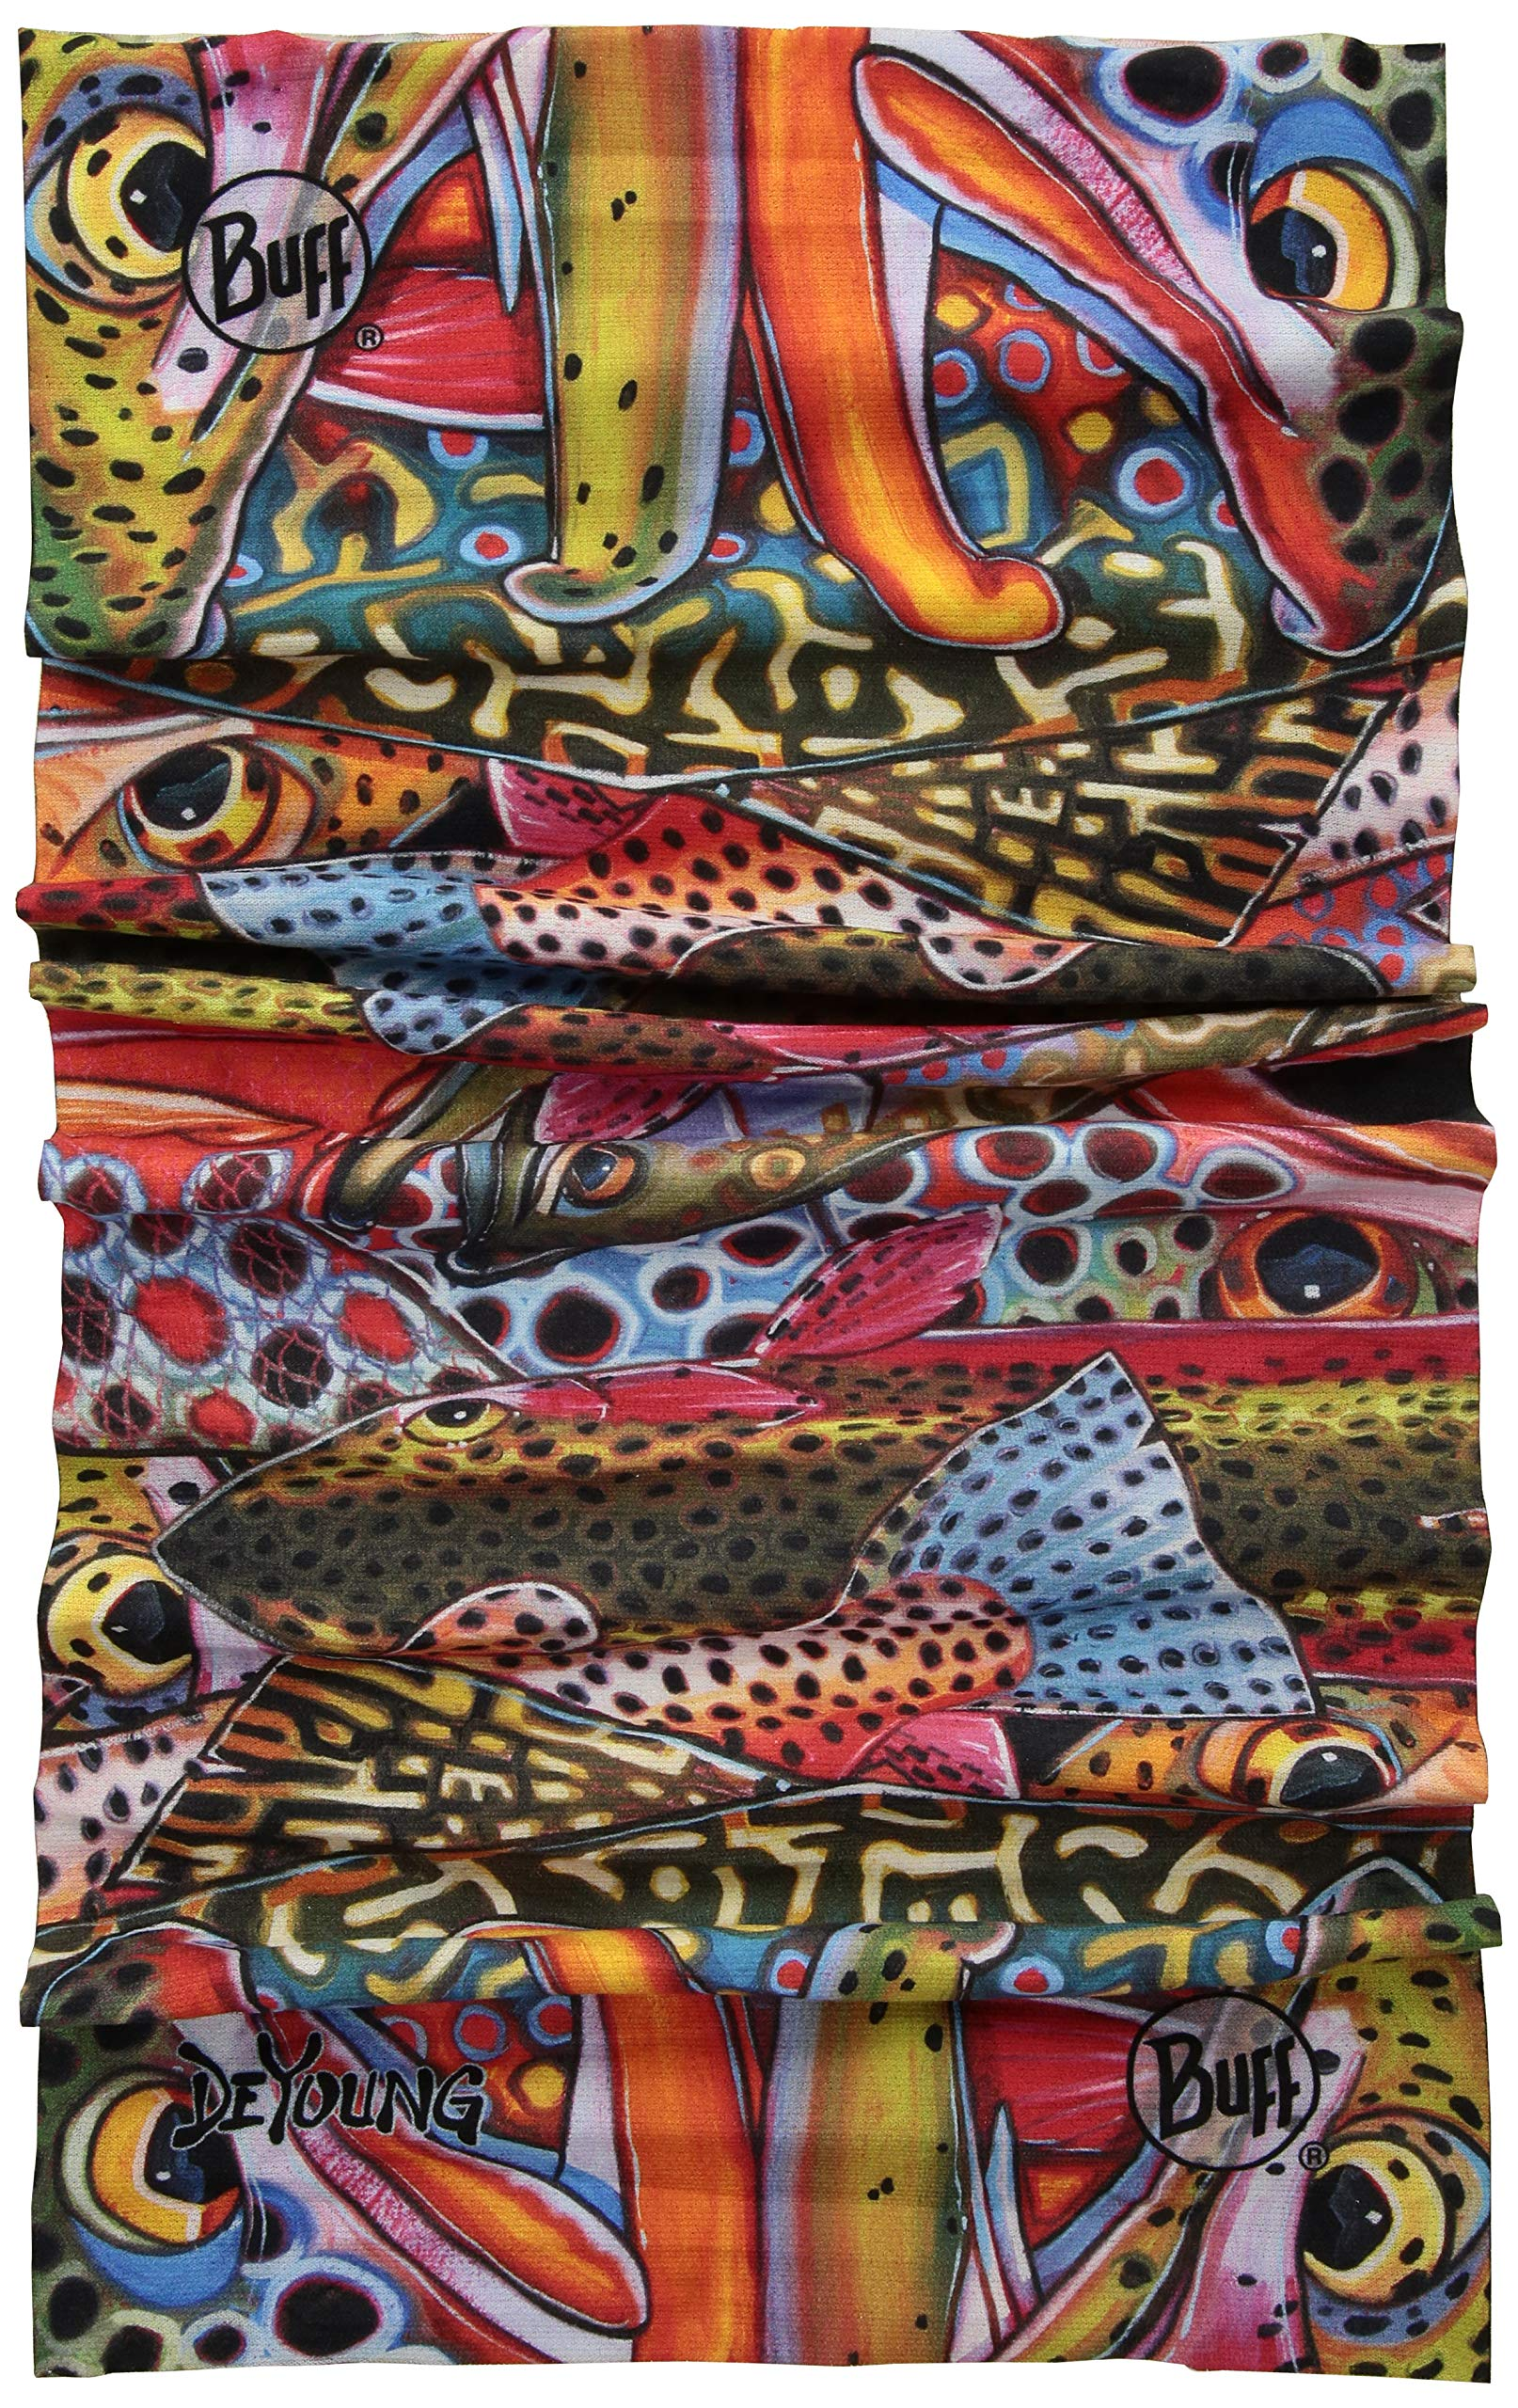 BUFF Unisex Coolnet UV+ 1, Deyoung Trout Confetti, One Size by Buff